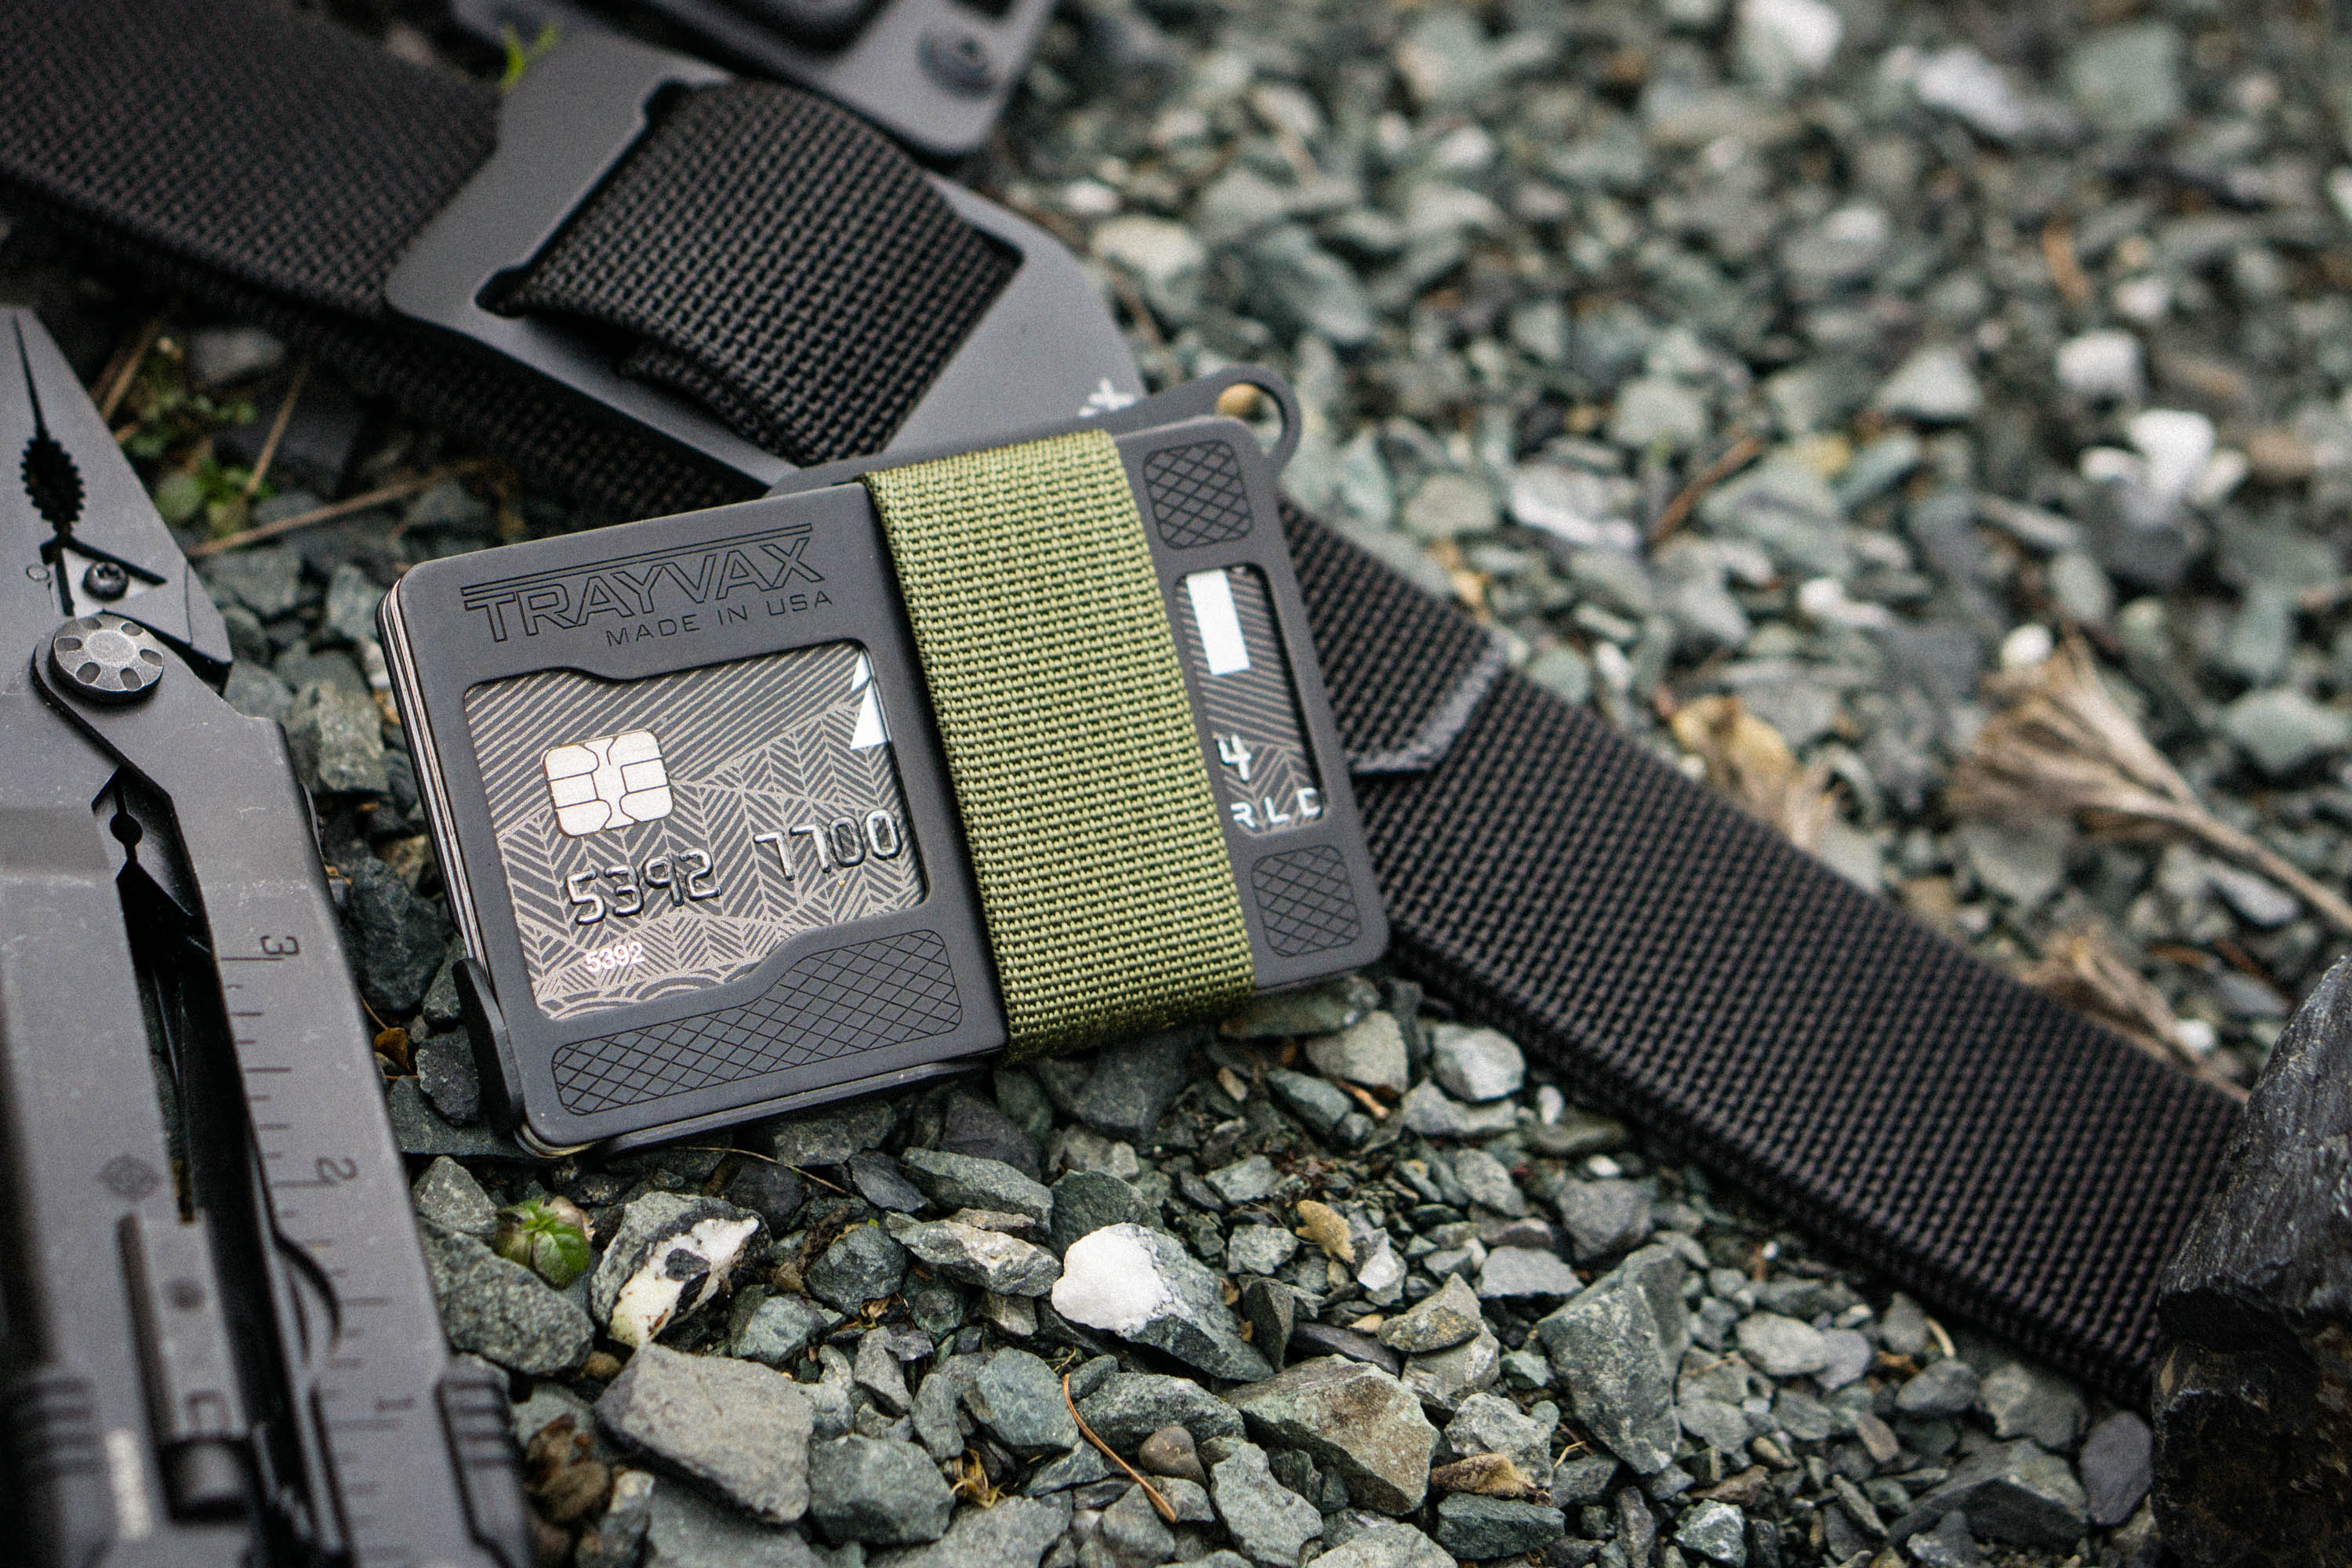 Armored Summit RFID blocking wallet on Trayvax belt